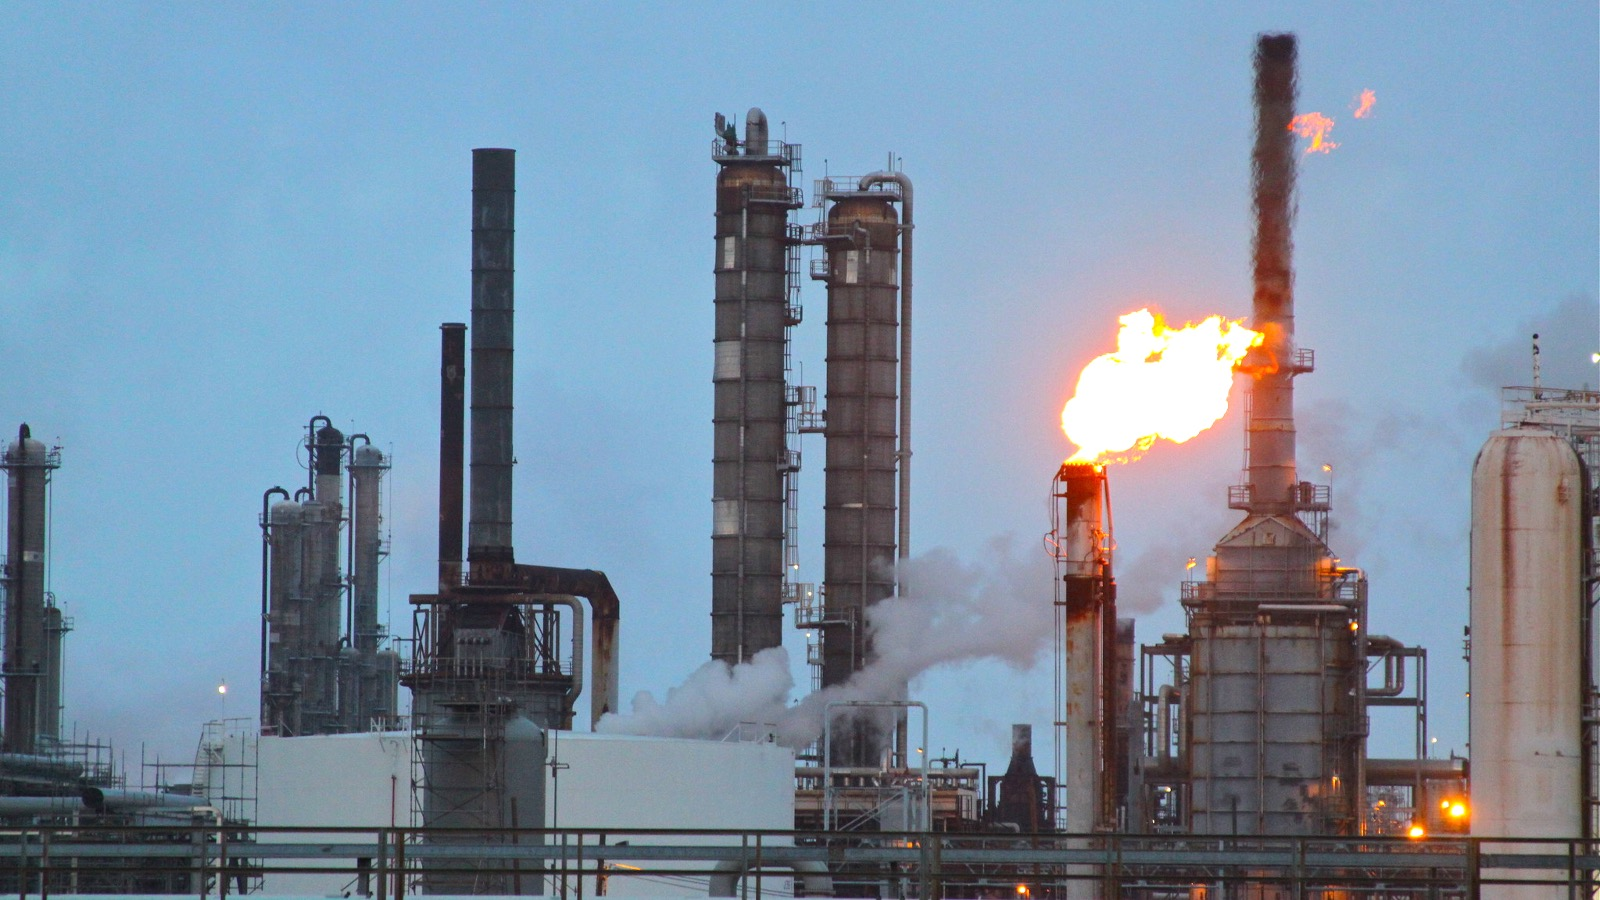 a flair burning bright over towers at Shell's Deer Park Refinery in Texas